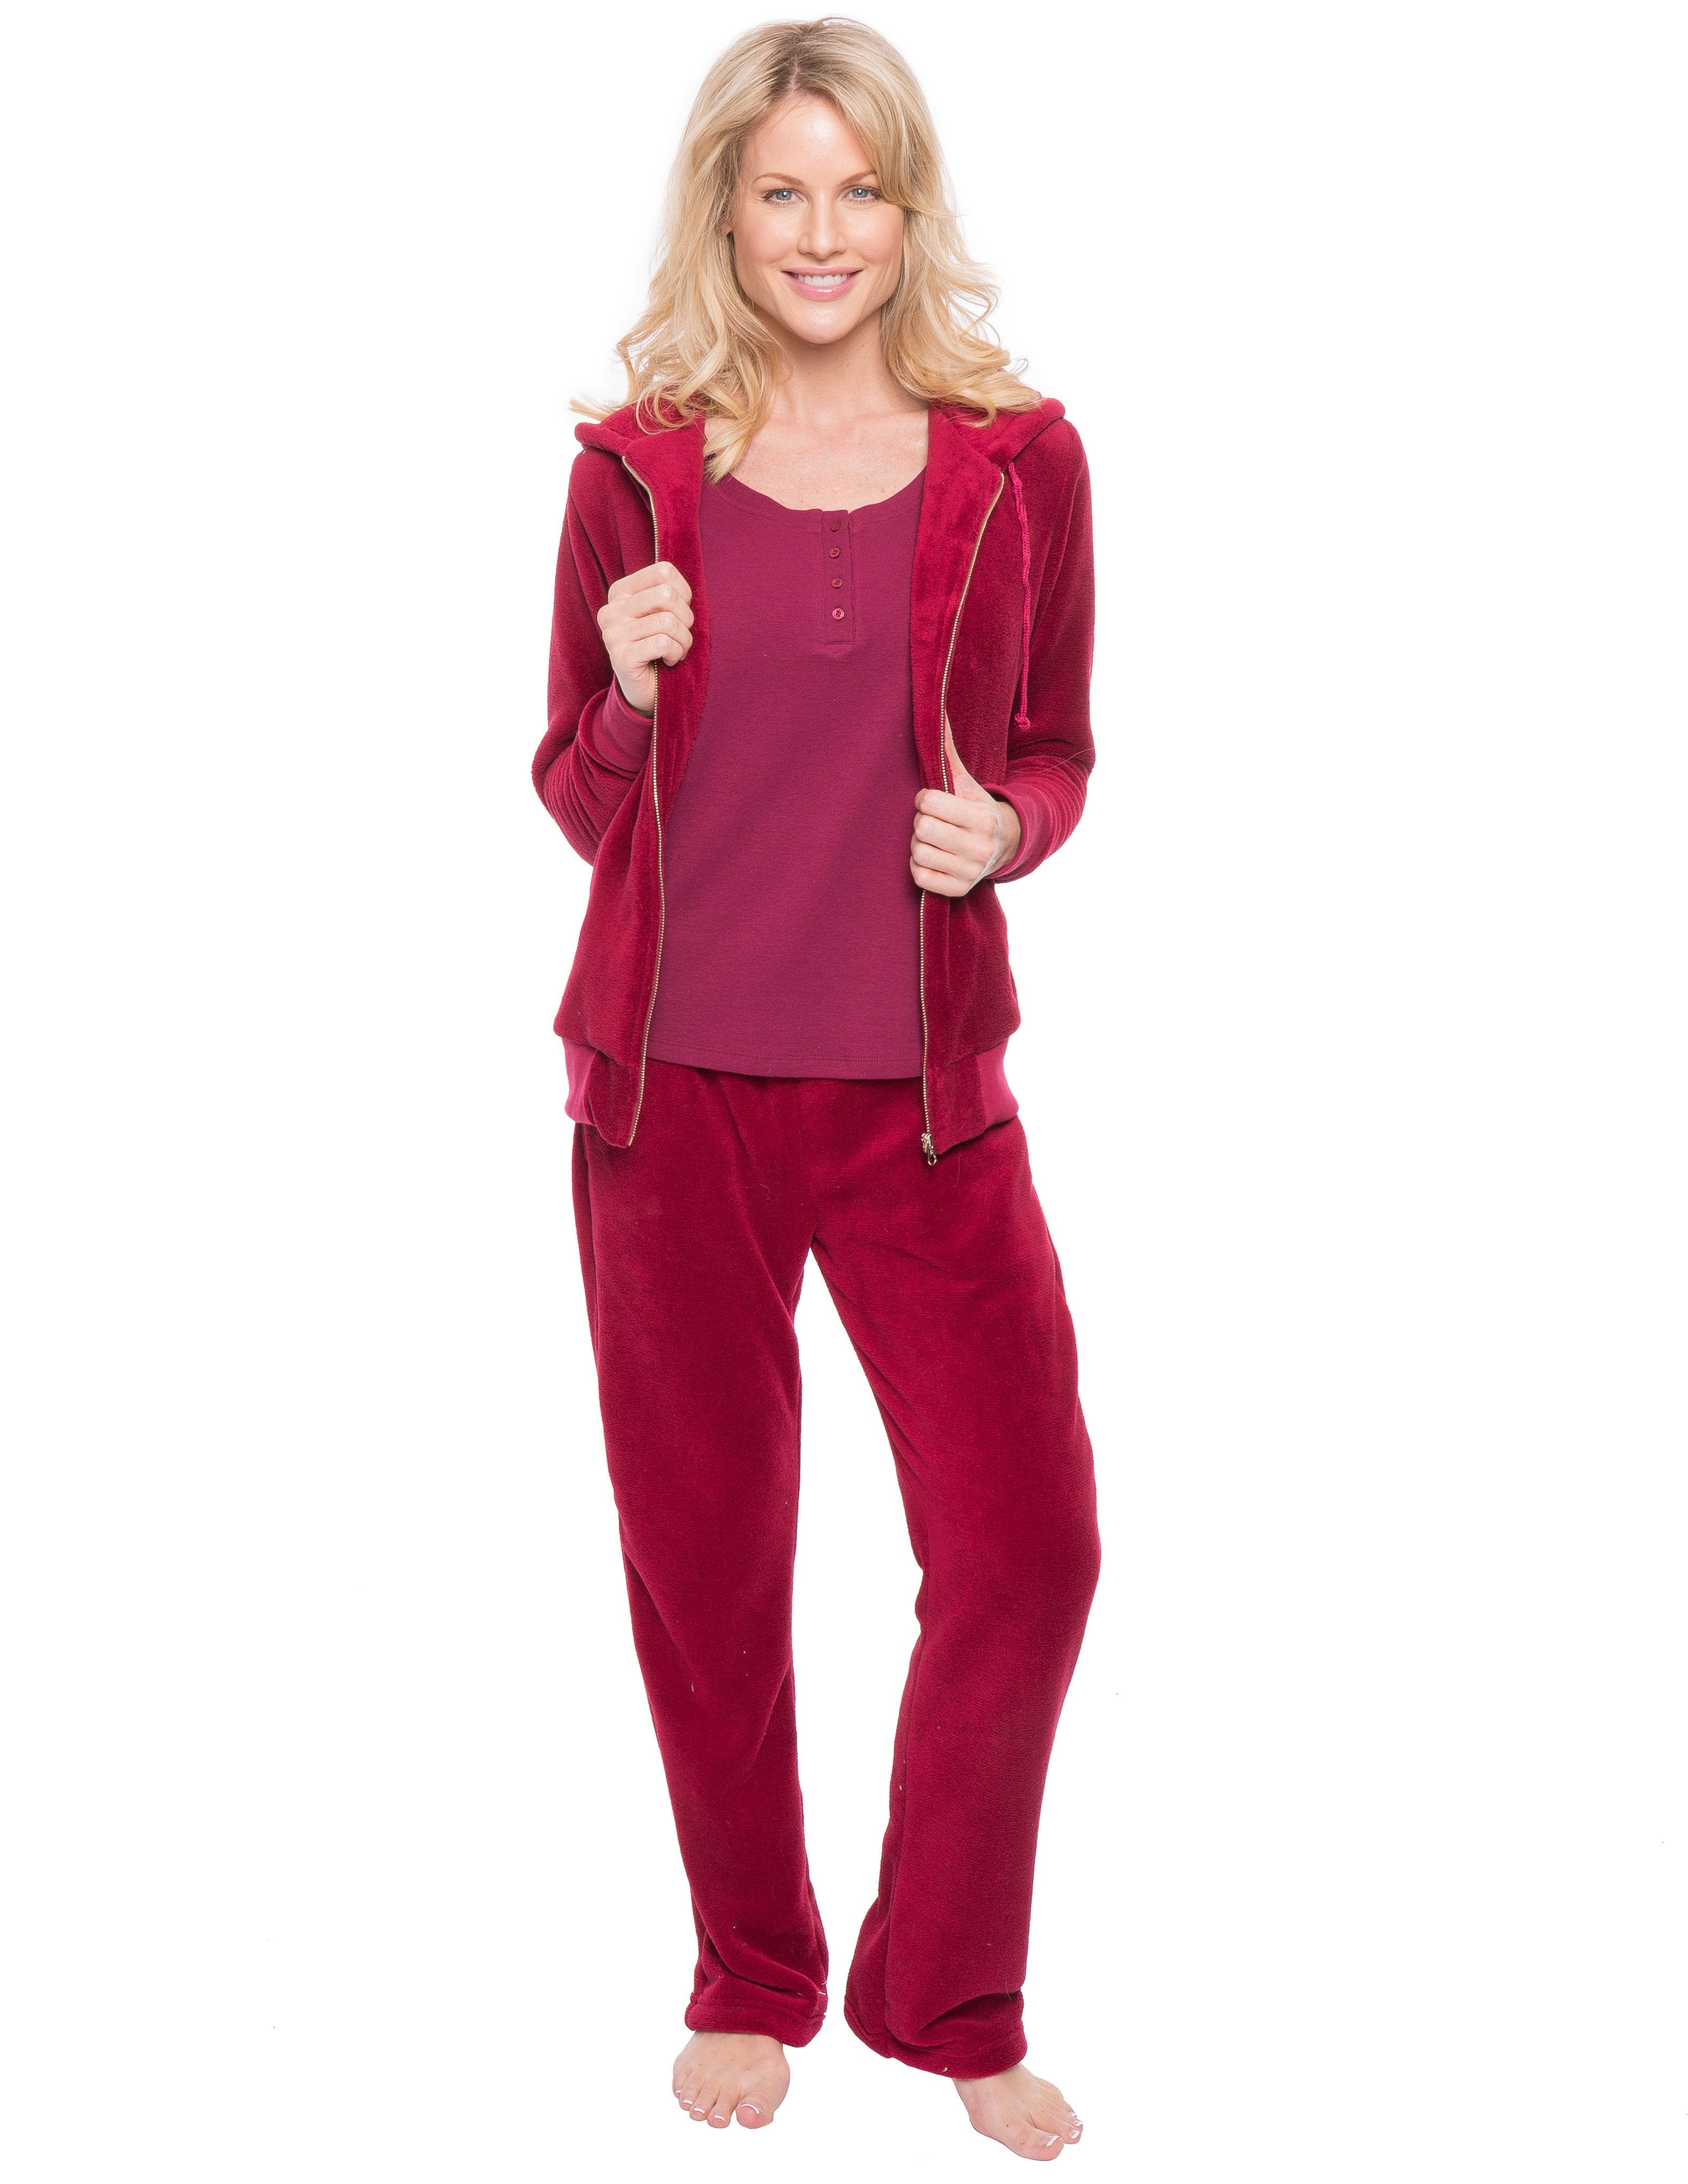 Women's Premium Coral Fleece Plush 3 Piece Lounge Set